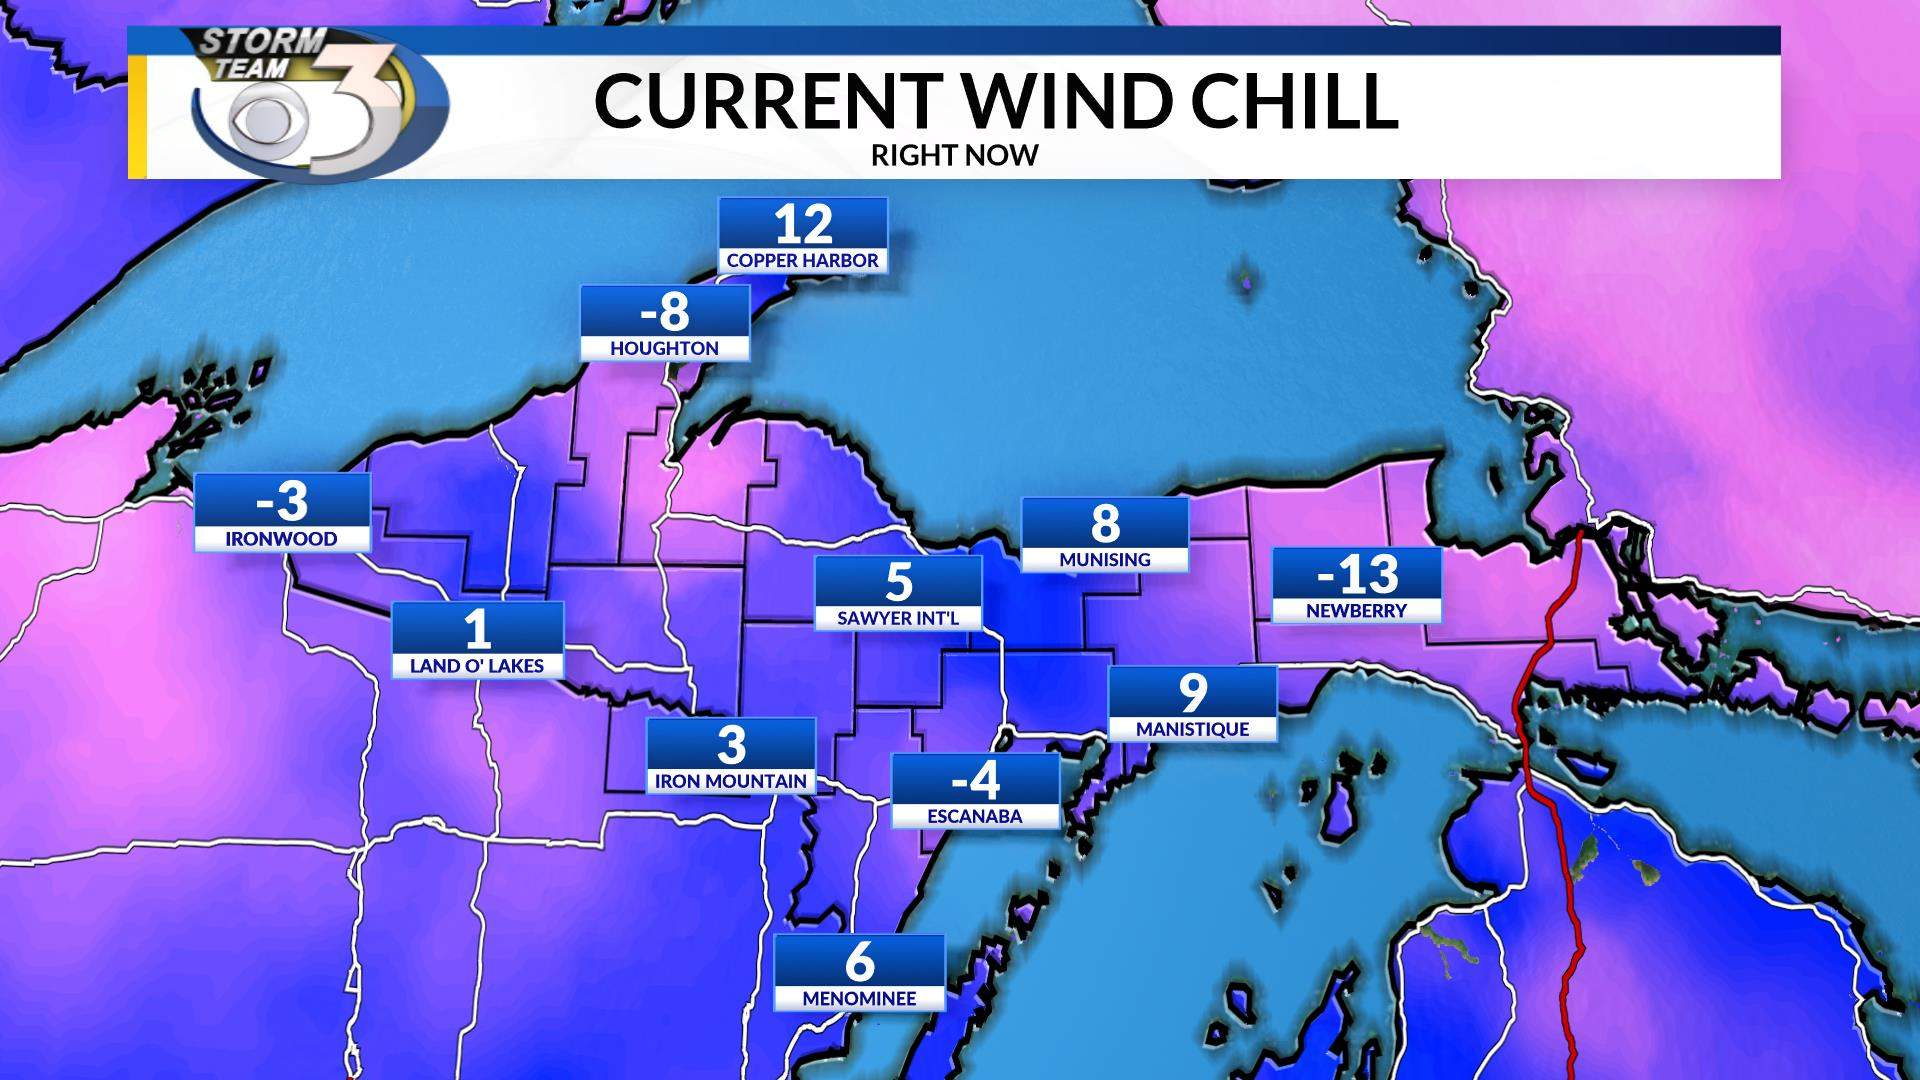 Current Wind Chill